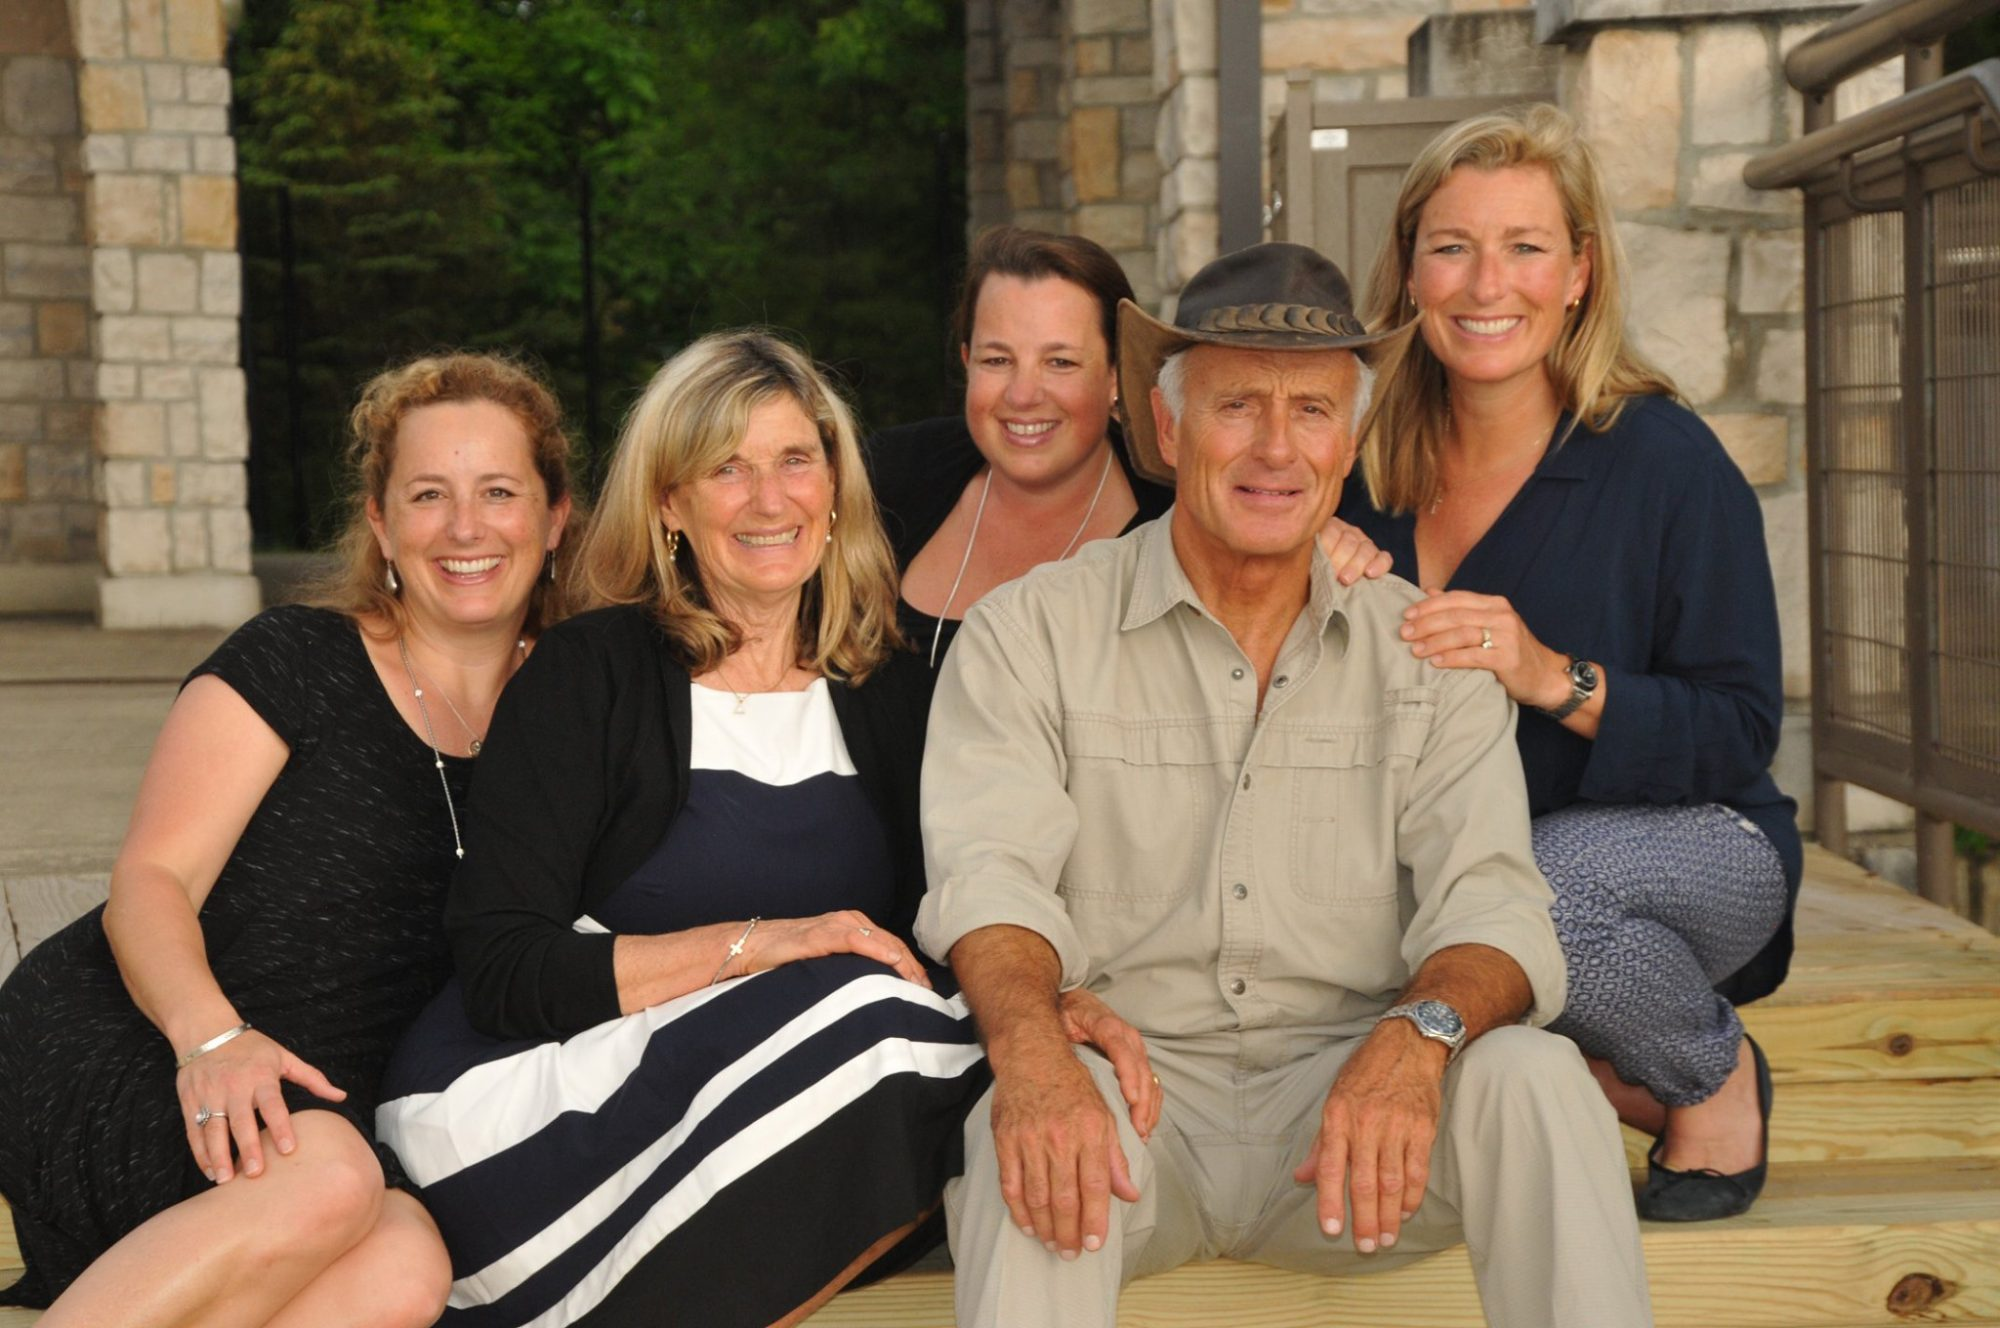 Former Columbus Zoo Director Jack Hanna, 74, Diagnosed with Dementia, Family Shares in Letter